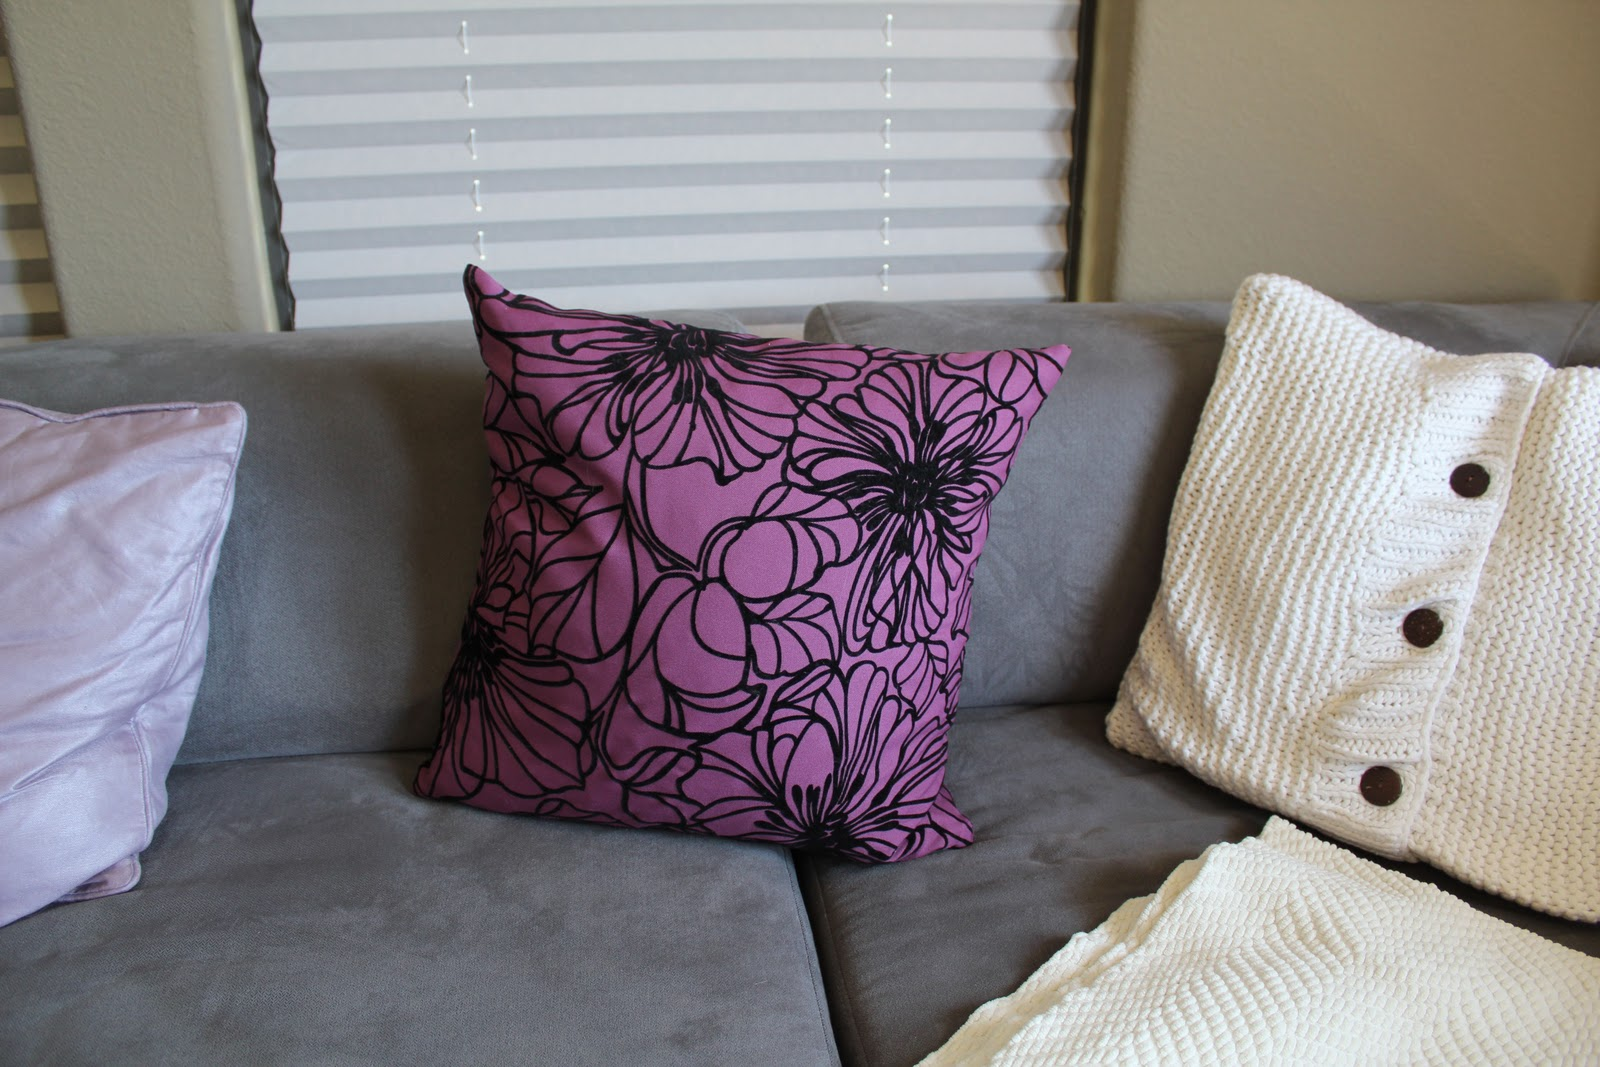 Marshalls Home Goods Decorative Pillows : Veronika s Blushing: Home Tour: Updates w/ Furniture & Decor